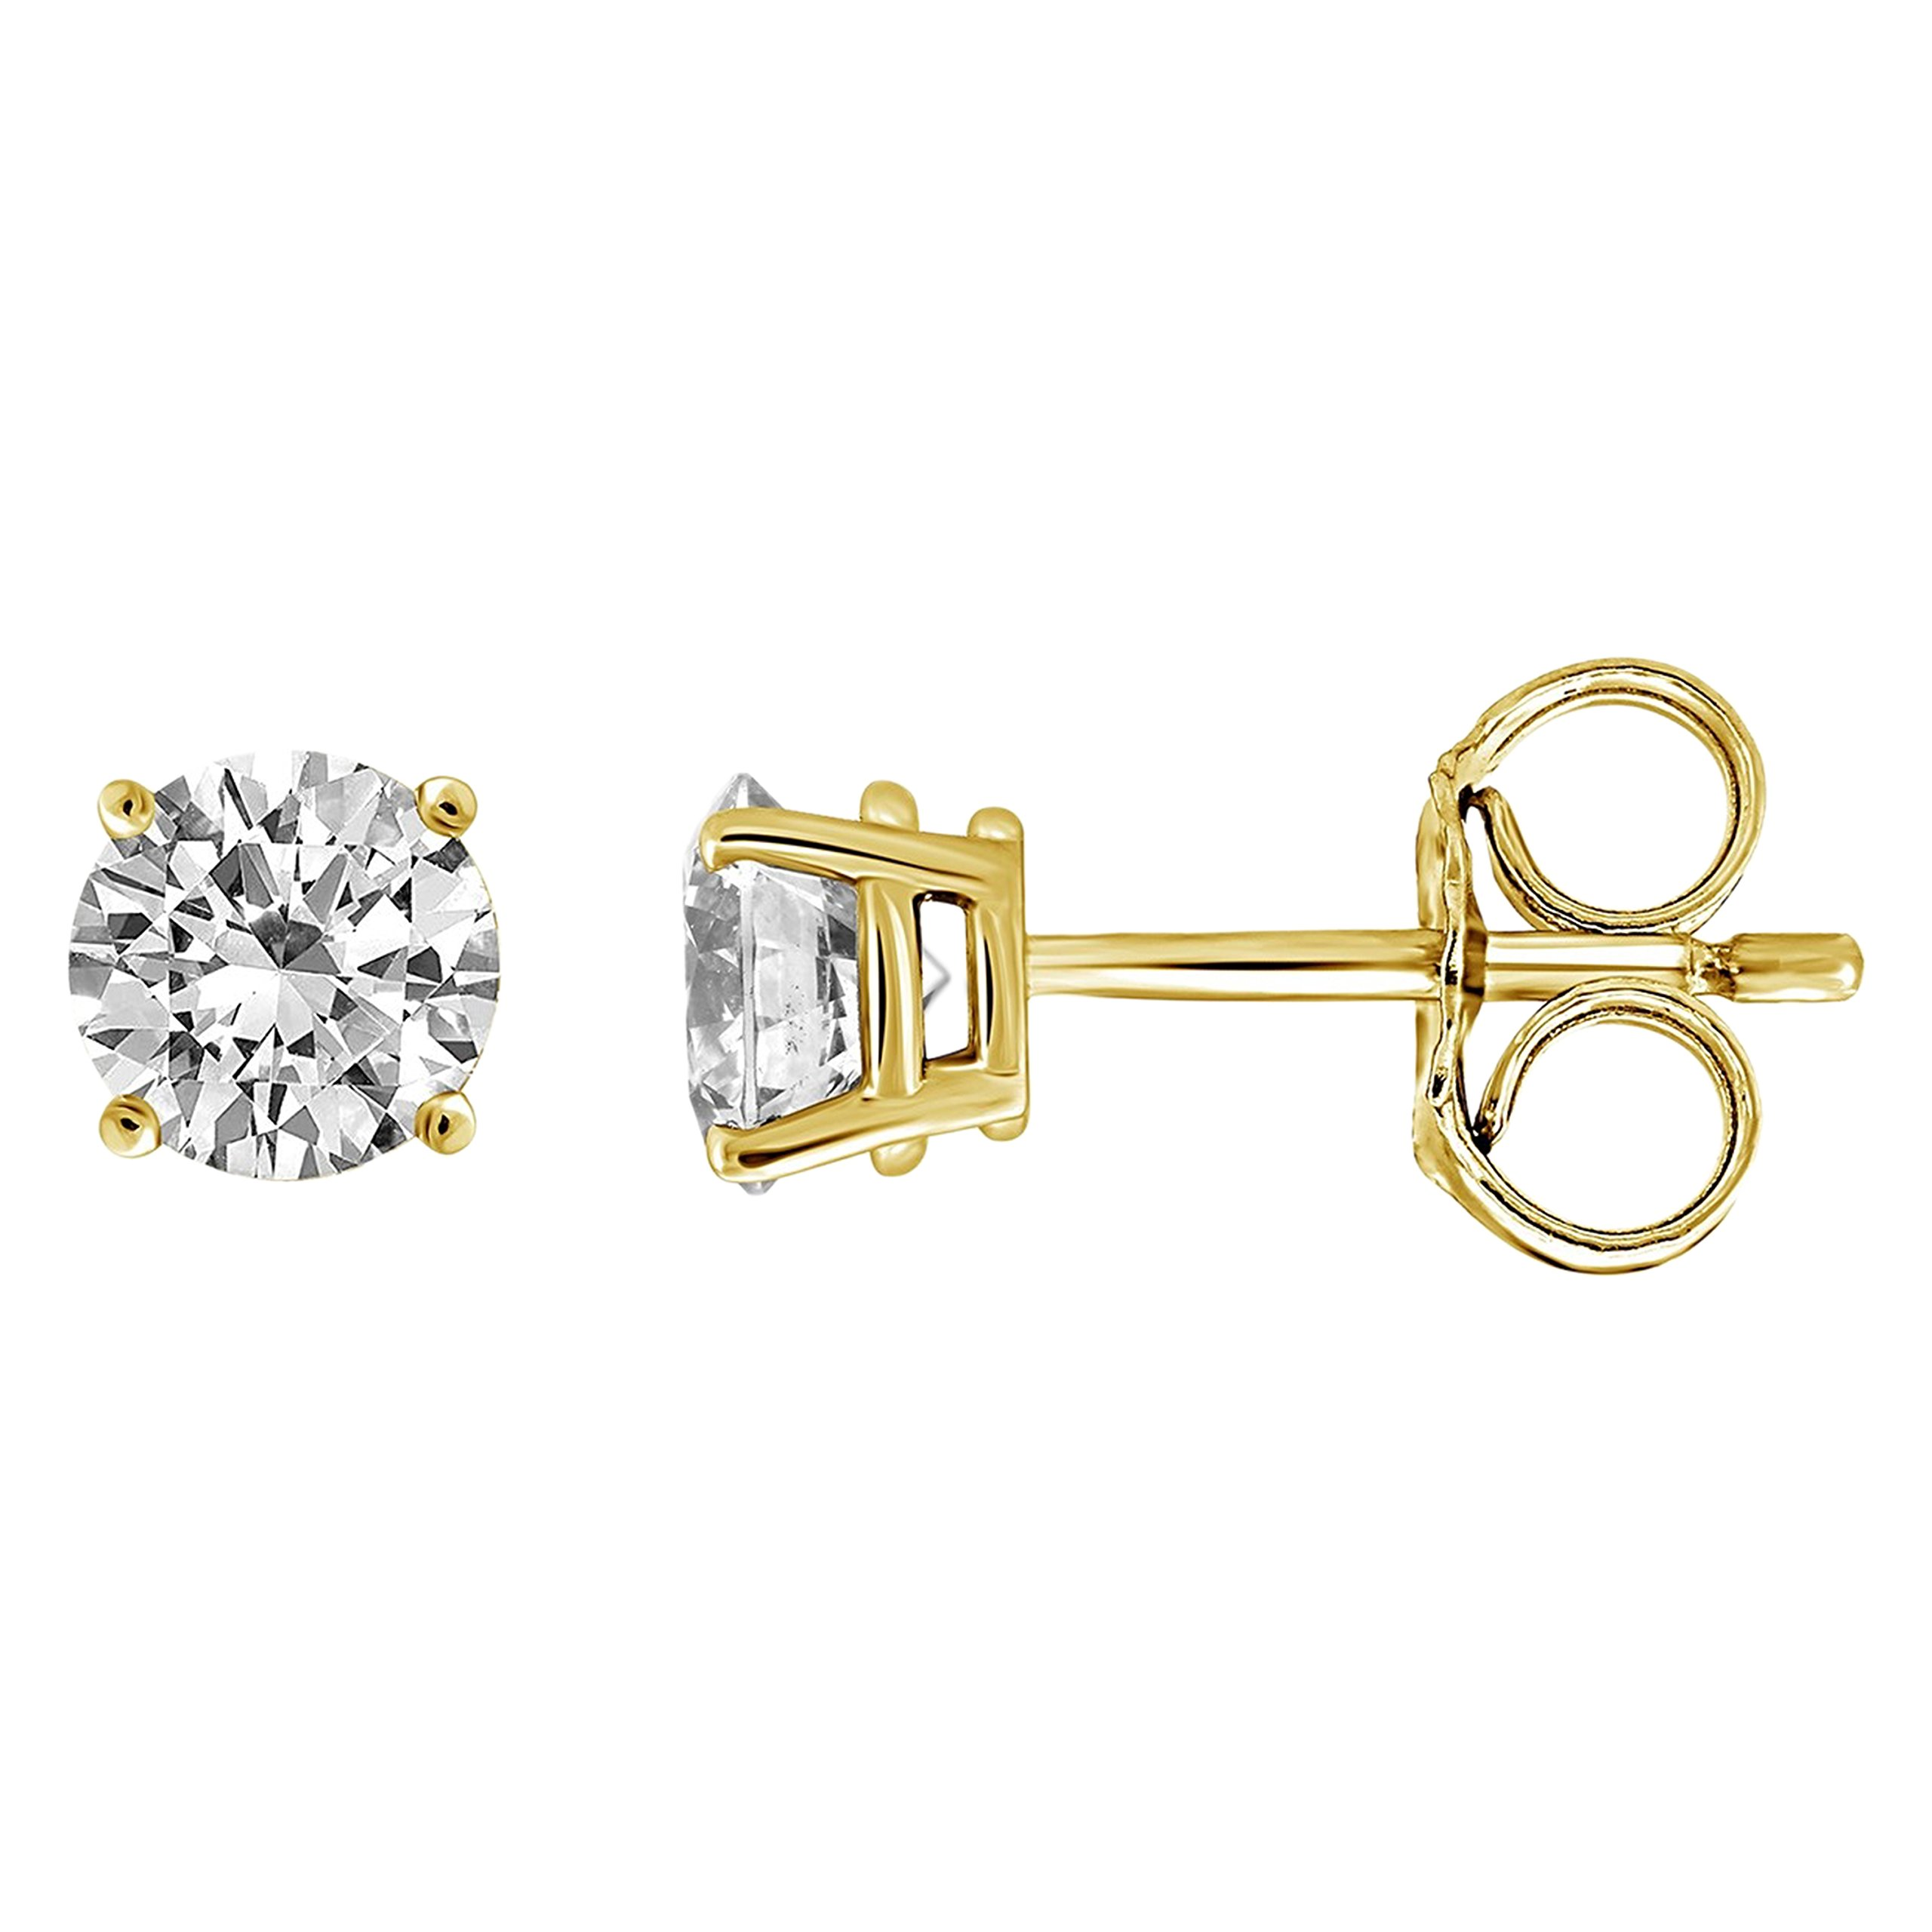 IGI Certified Diamond Stud Earrings for Women Set in 14K Gold(1/4ctw Yellow)